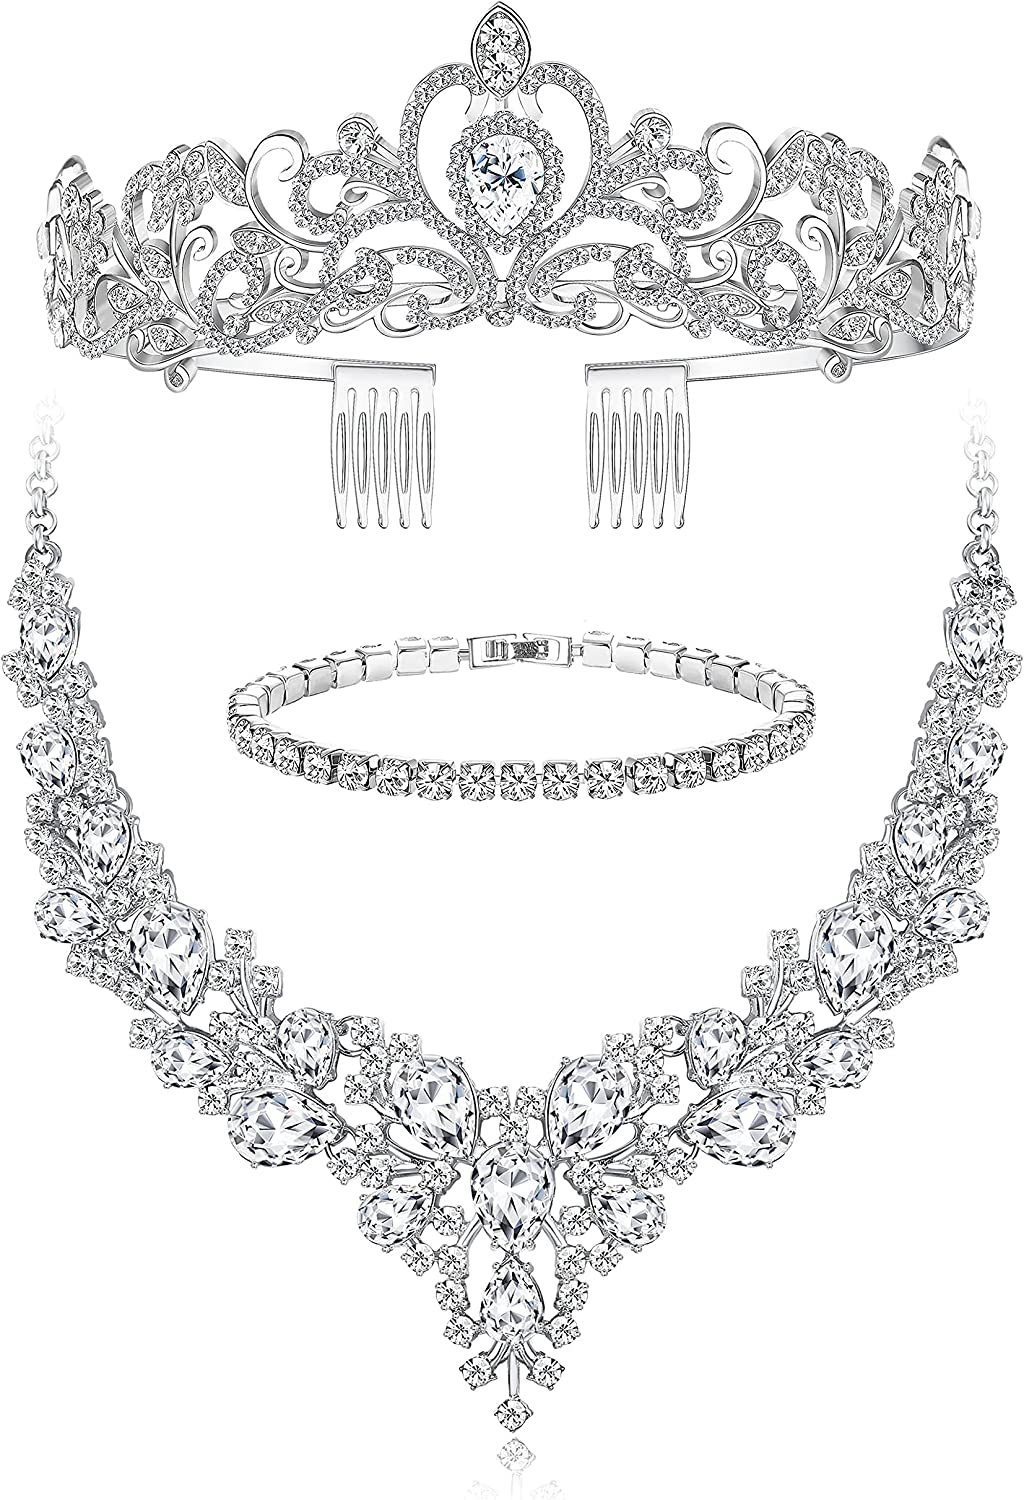 FIASASO Crystal Bridal Jewelry Sets for Women White Gold Plated Necklace Bracelet Tiara Crown Set Prom Costume Jewelry Allergy Free Wedding Party Jewelry for Bridal Bridesmaid